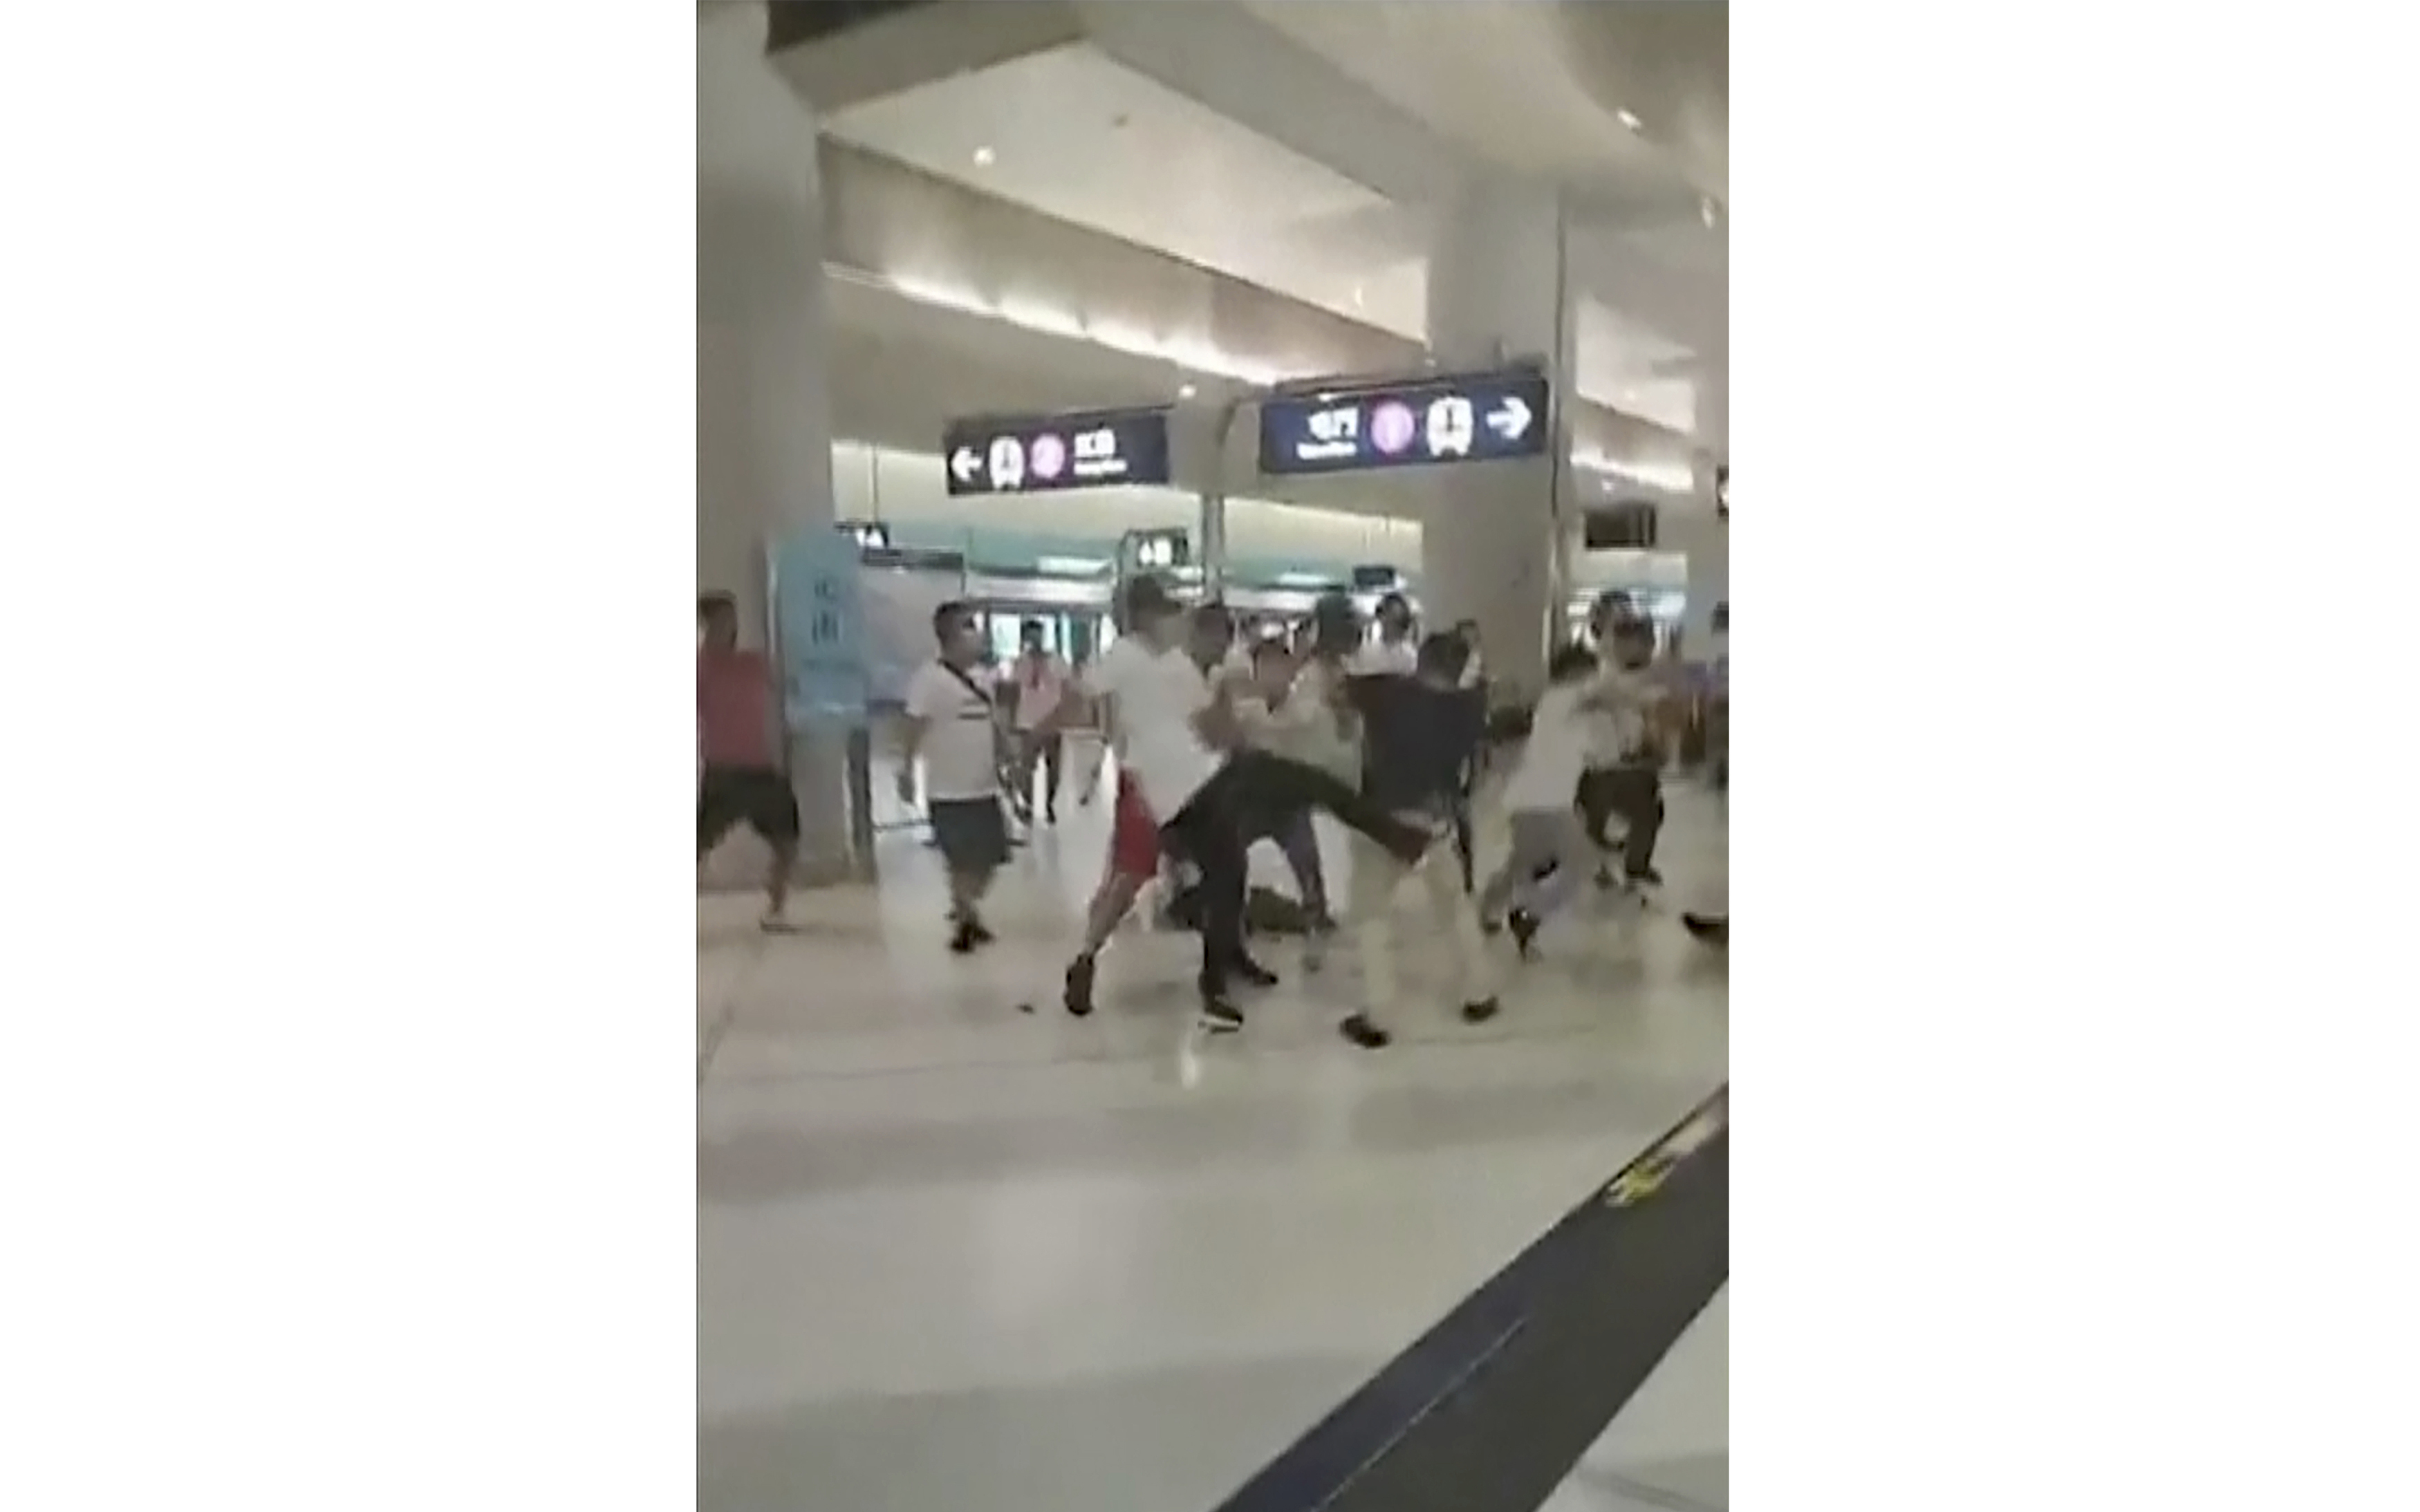 This image taken from a video shows confrontation between masked assailants and protesters at Yuen Long MTR train station in Hong Kong on July 21, 2019.